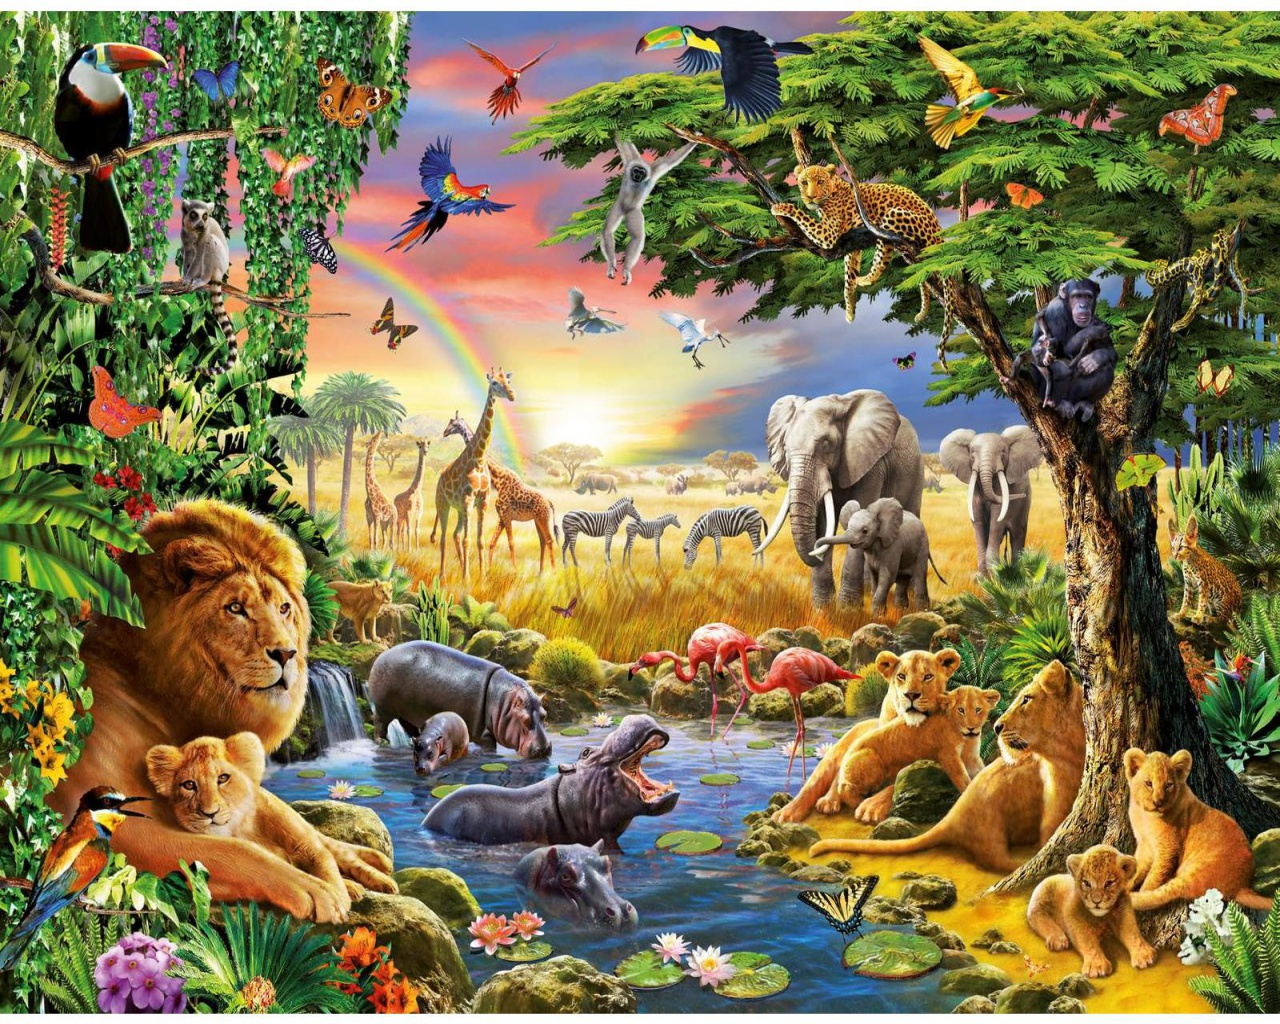 Wallpapers Of Jungle Animals